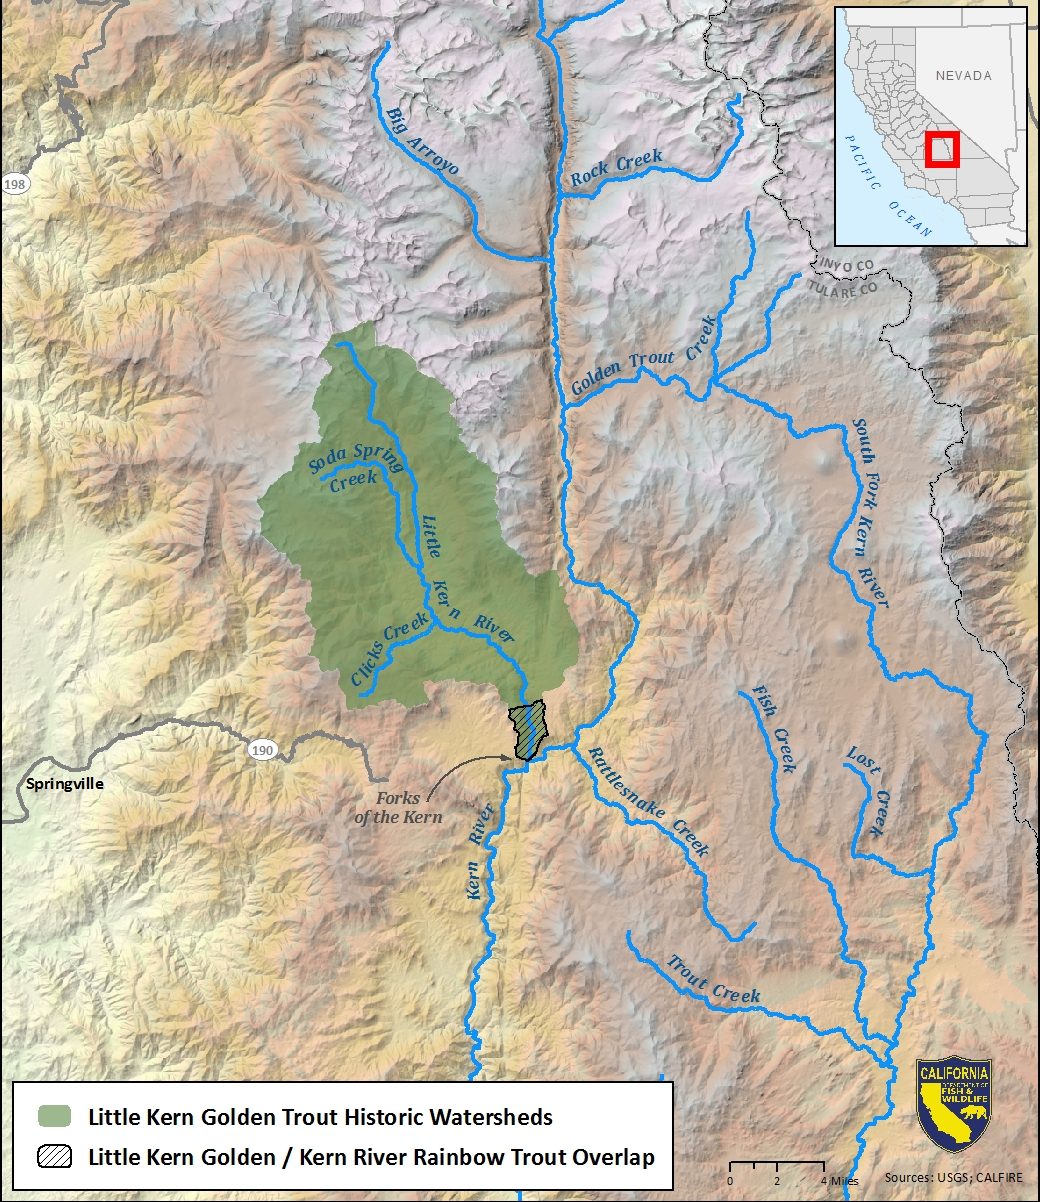 Map of Little Kern golden trout historic watersheds-link opens in new window